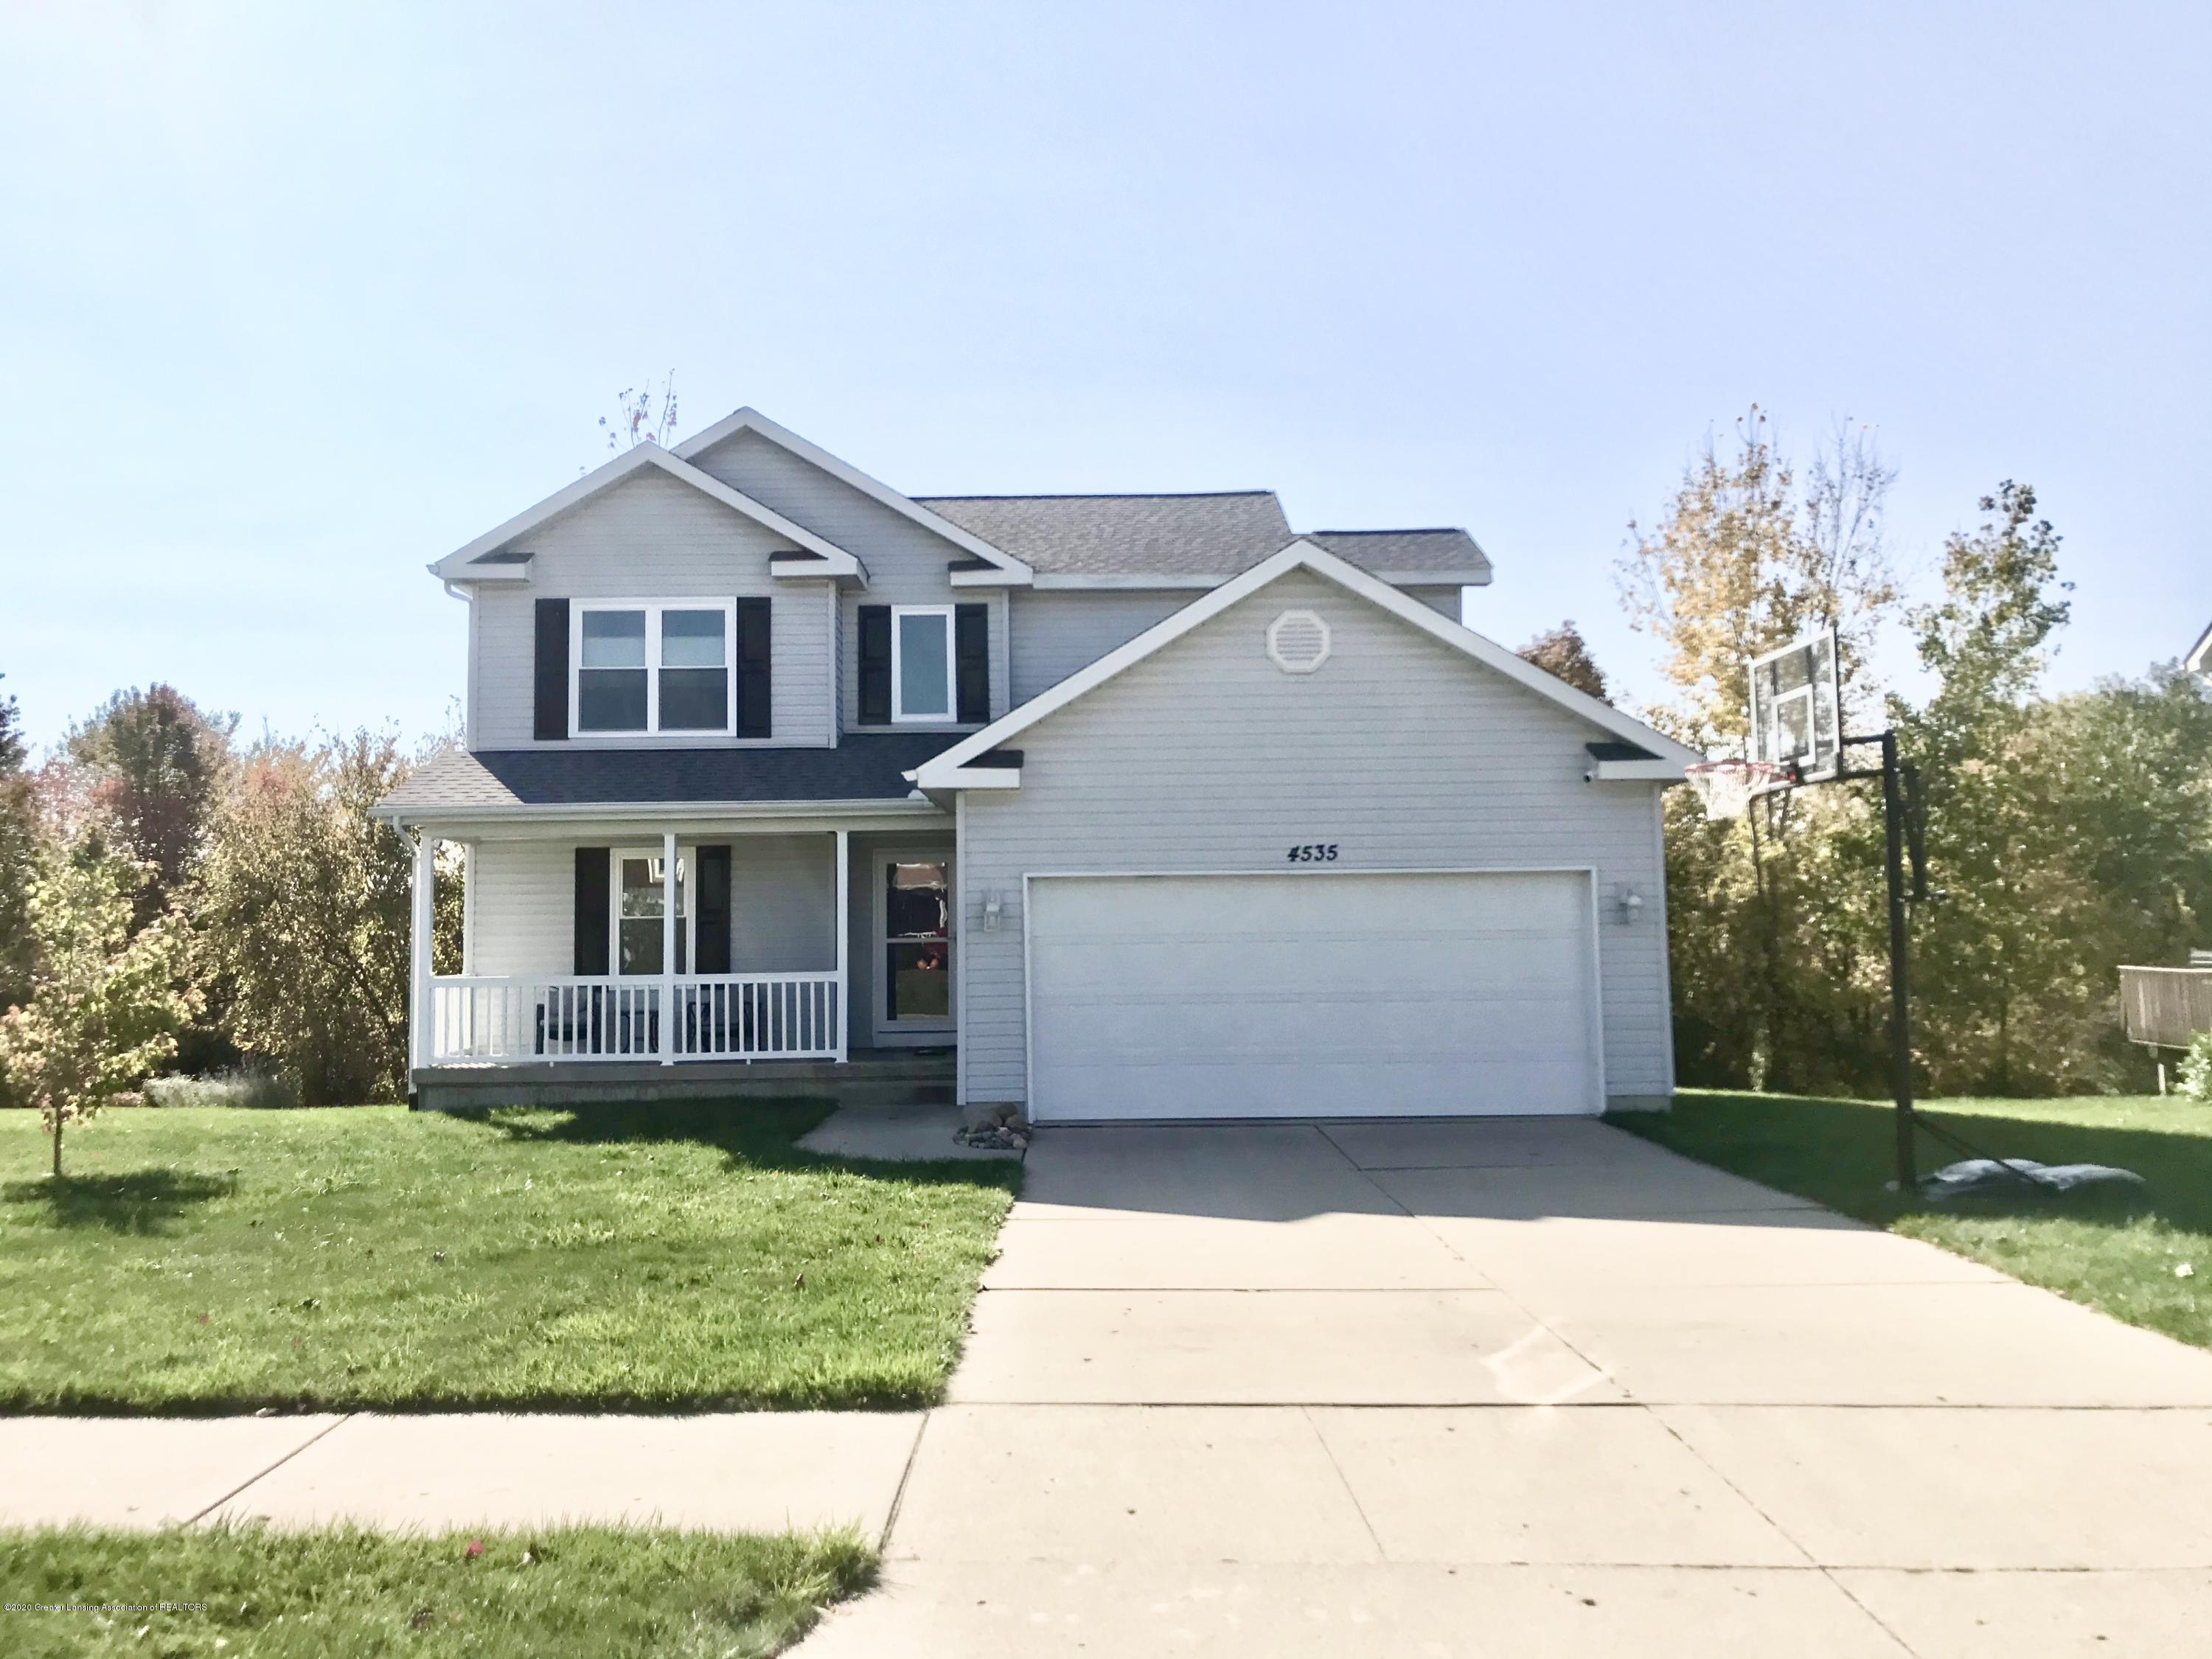 4535 Sunset Dr - Front - 1